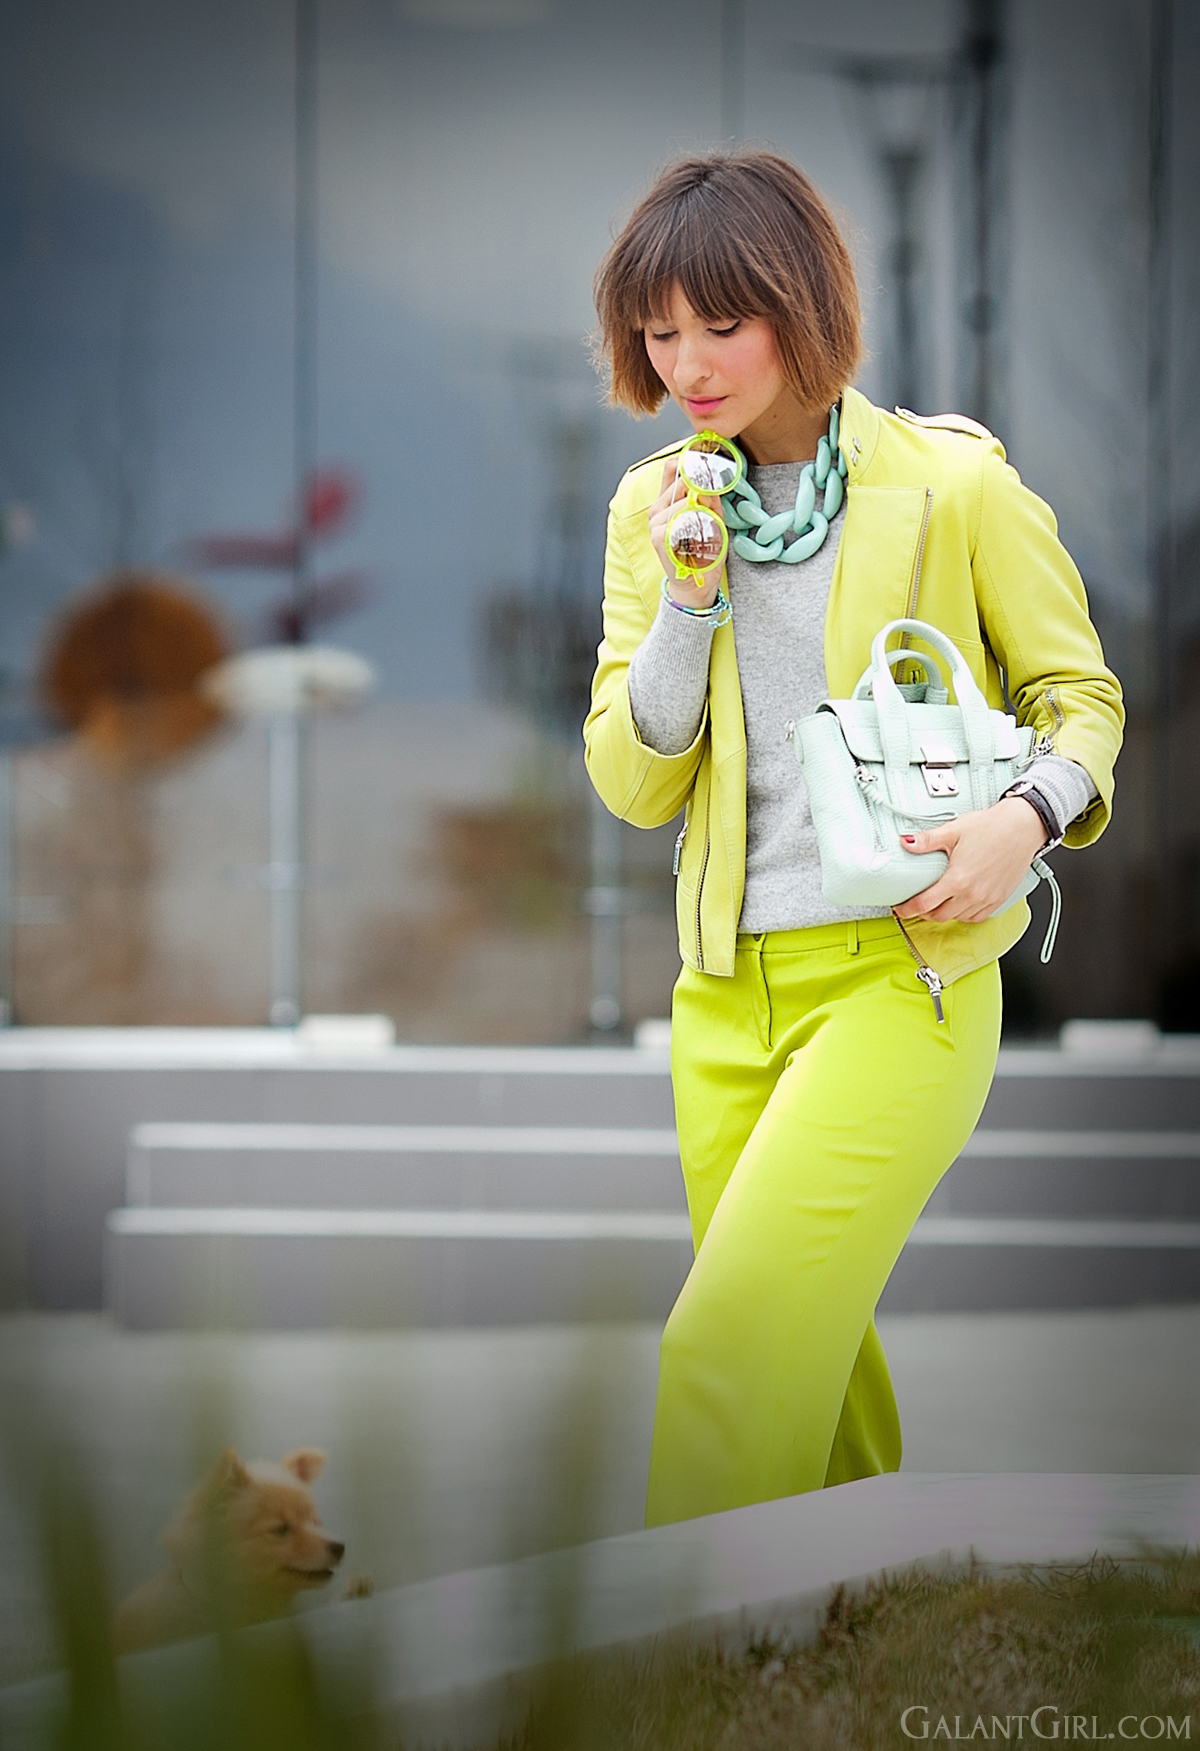 lime green outfit for spring on GalantGirl.com